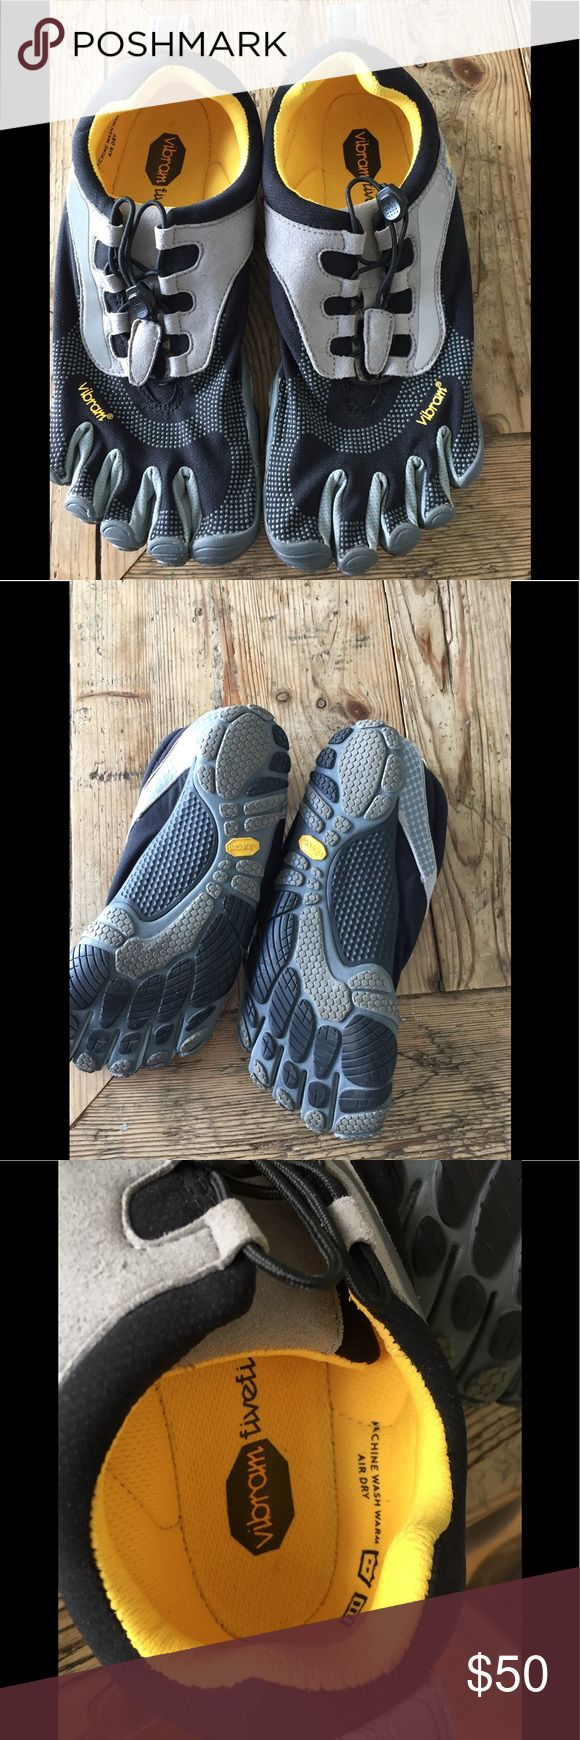 NWOT Vibram Five Finger Bikila Shoes NWOT vibram Five Finger shoes size eur 42 five fingers Shoes Sandals & Flip-Flops